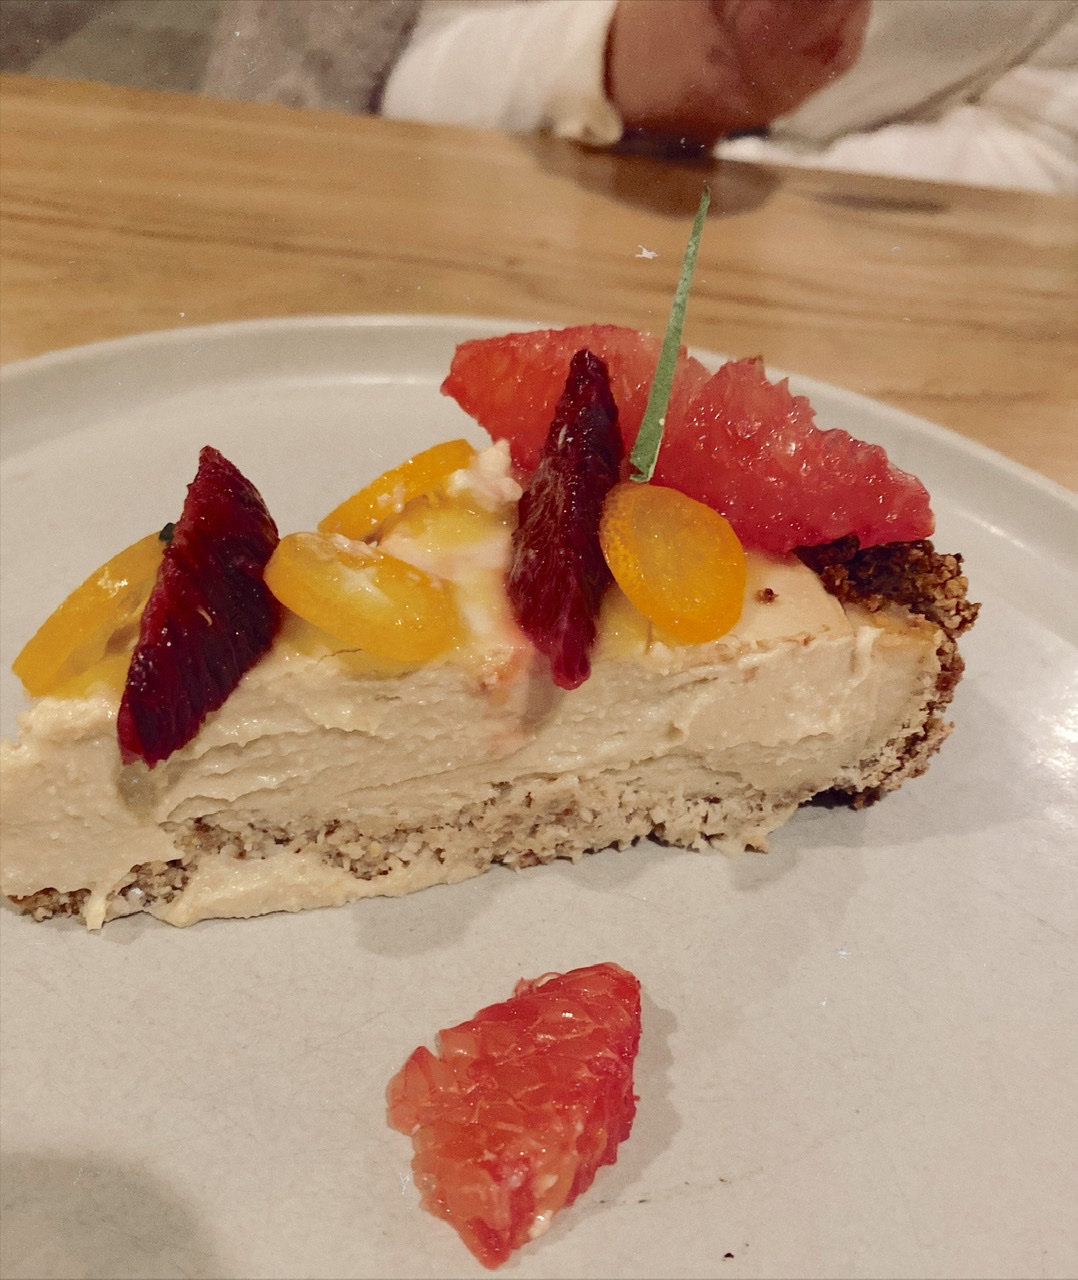 Dairy-free cheesecake at Terras